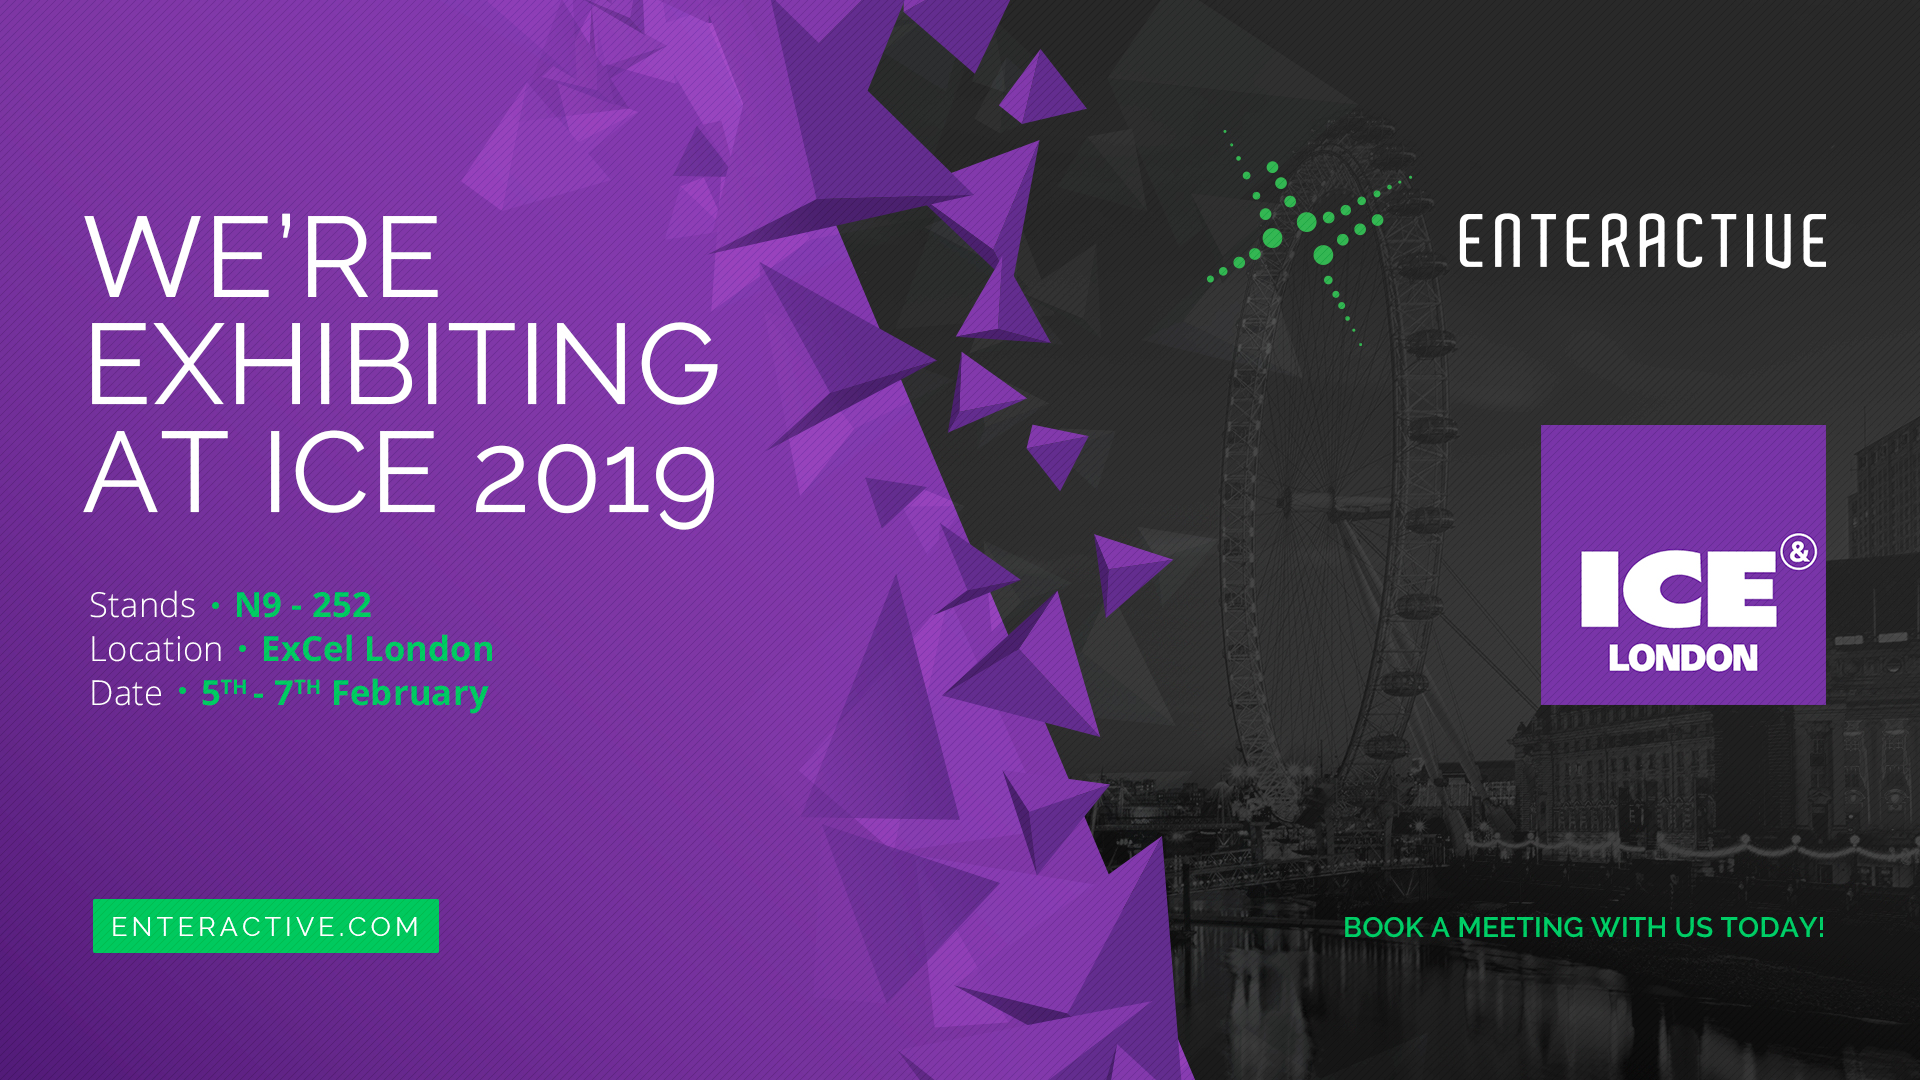 enteractive-ICE-London-coffee-meeting-schedule-2019-